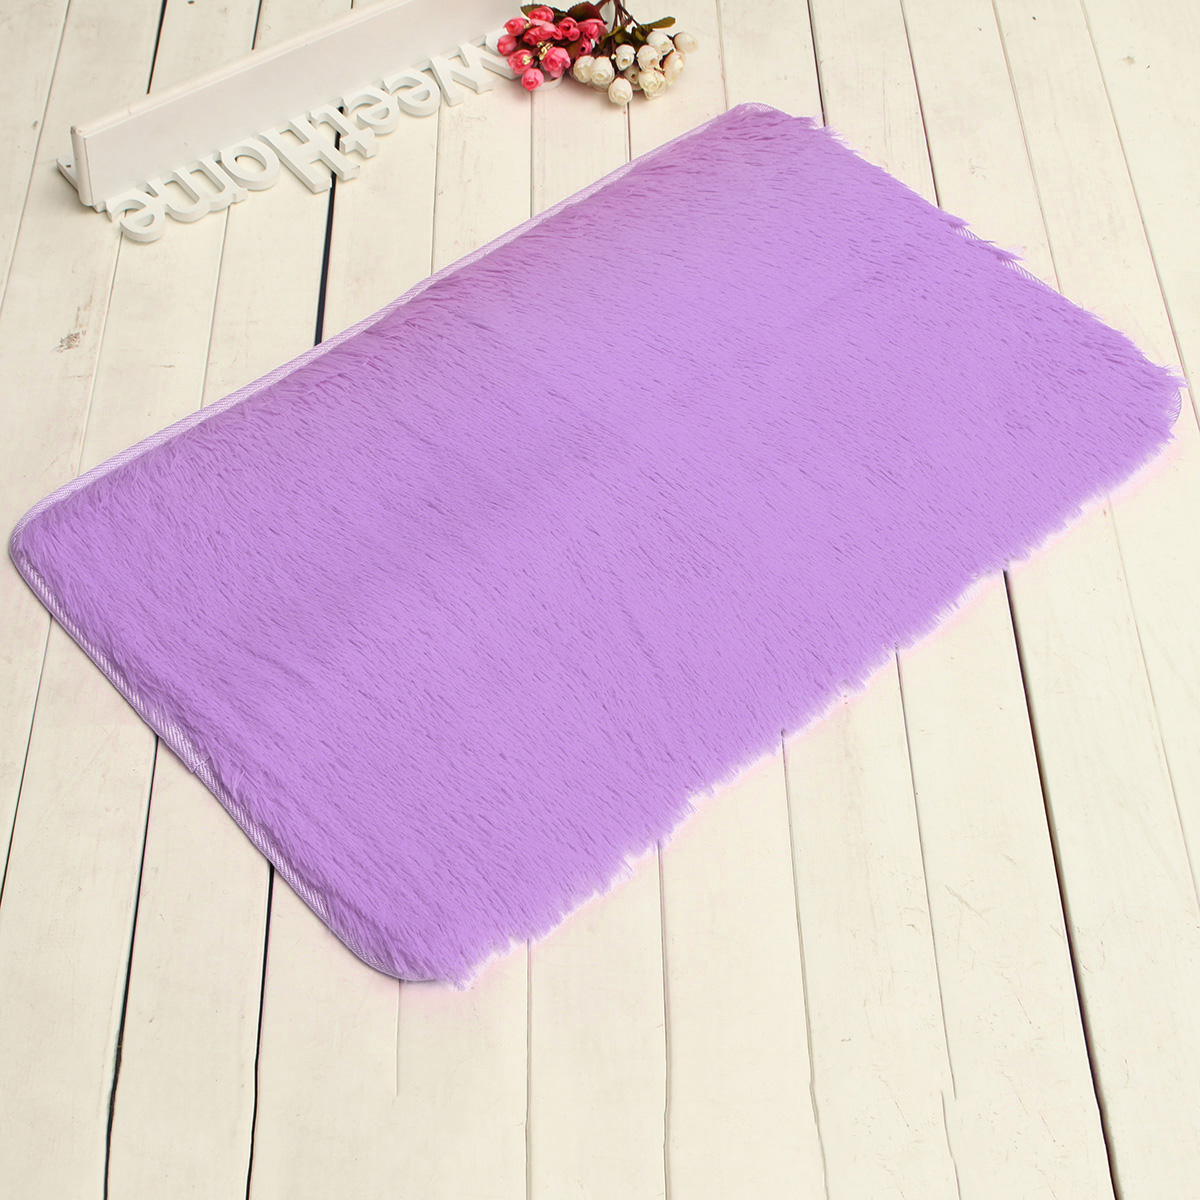 """❤ 32""""x20""""x1.8"""" Multicolors Non-slip Absorbent Soft Thick Plush Bath Mat Bathroom Floor Shower Quick Drying Rubber Luxury Anti-skid Mat Pad Rug 8 Colors ❤"""